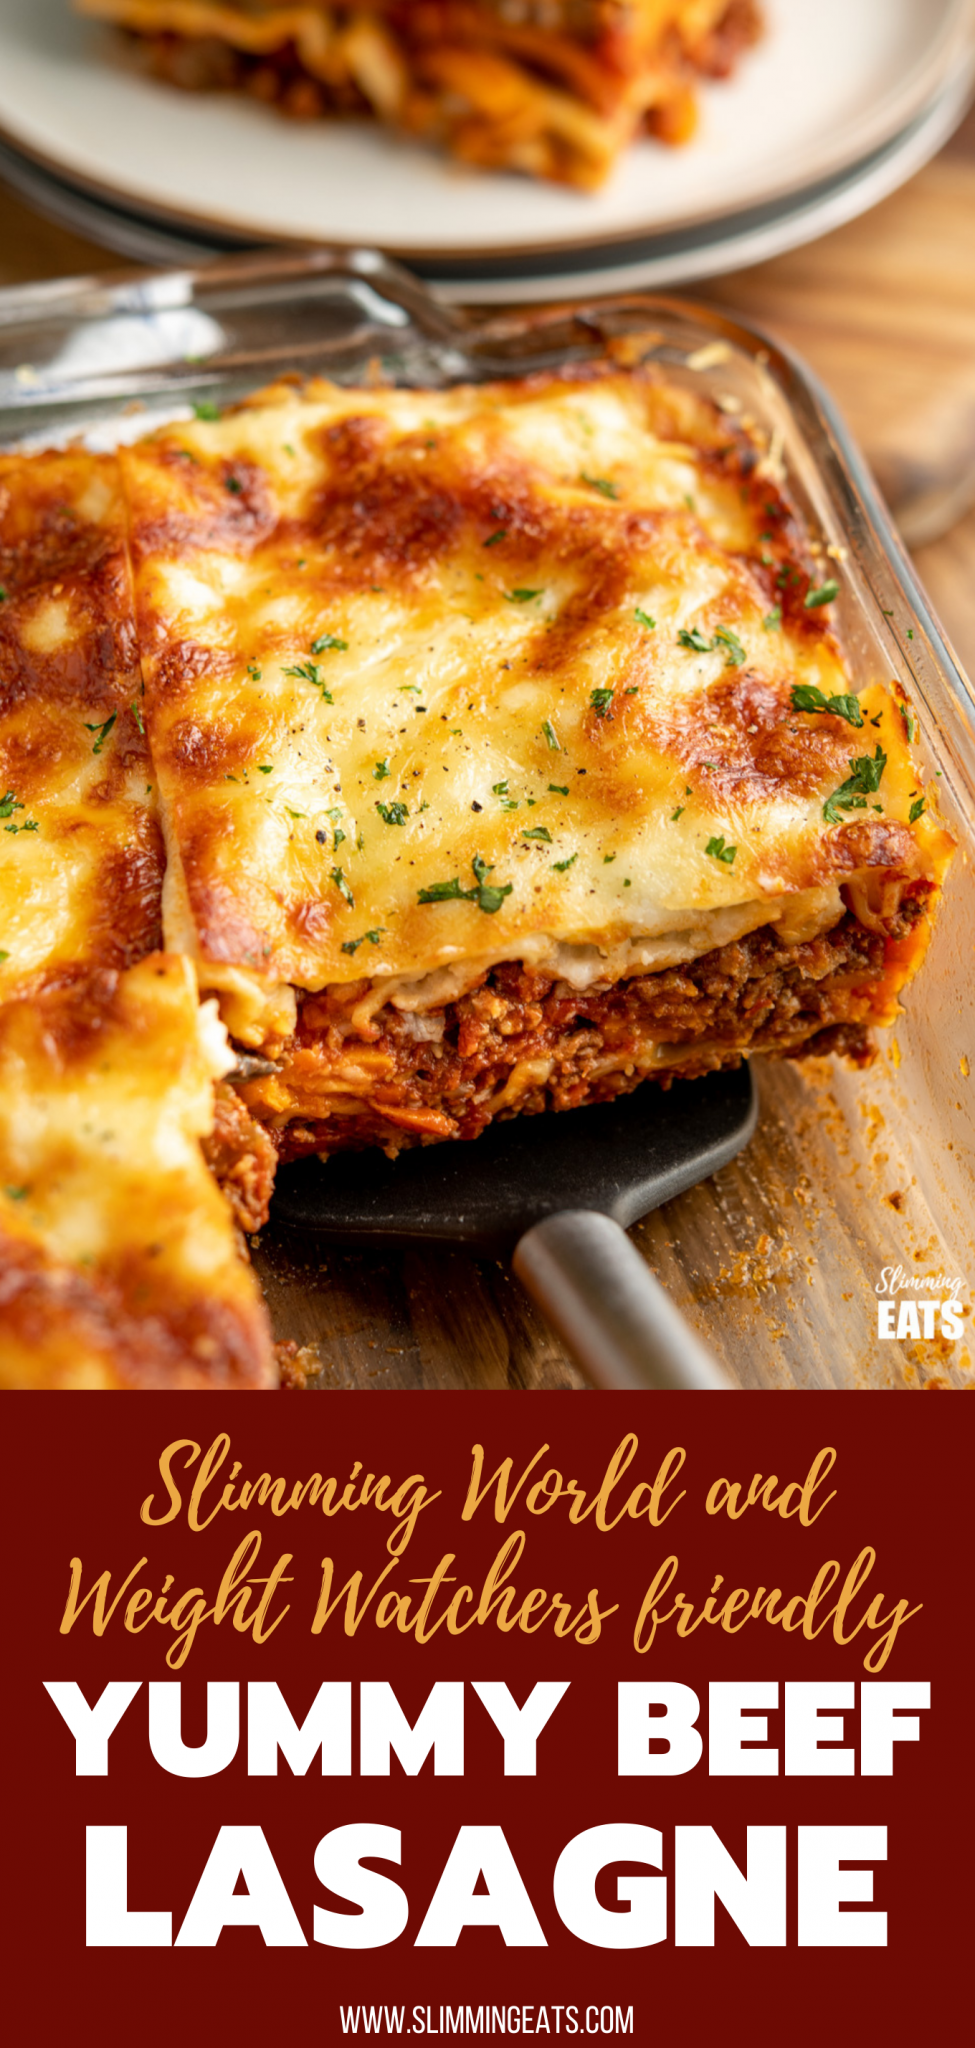 yummy beef lasagne slice on a spatula from oven dish